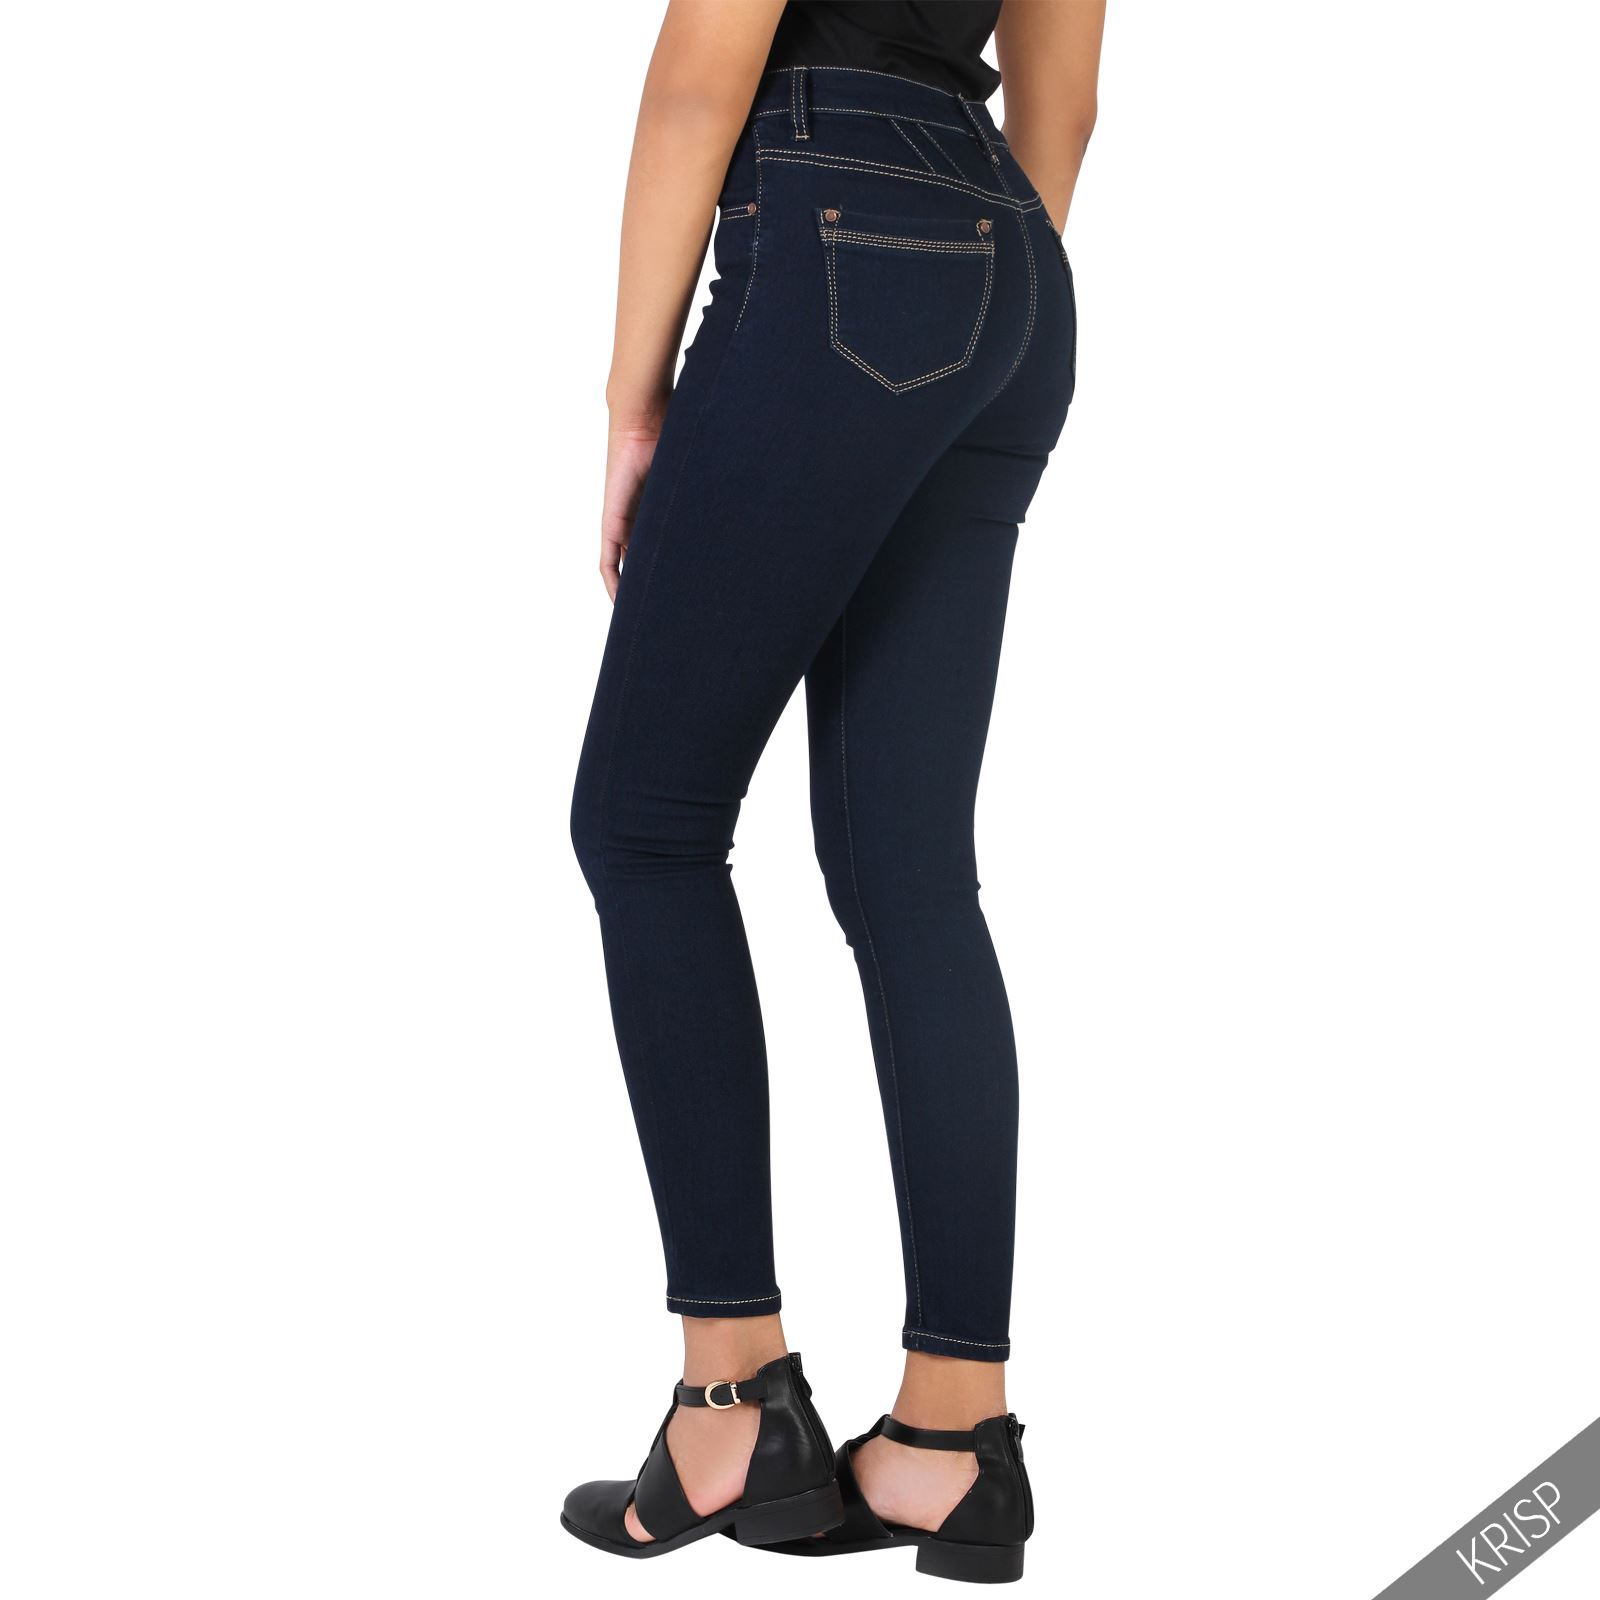 Features of Boulder Denim Classic Skinny Fit Jean - Womens: Extreme Stretch - Unlike most stretch denim which stretches vertically or horizontally, our denim is designed to move like our body does so we designed it to stretch on the diagonal.